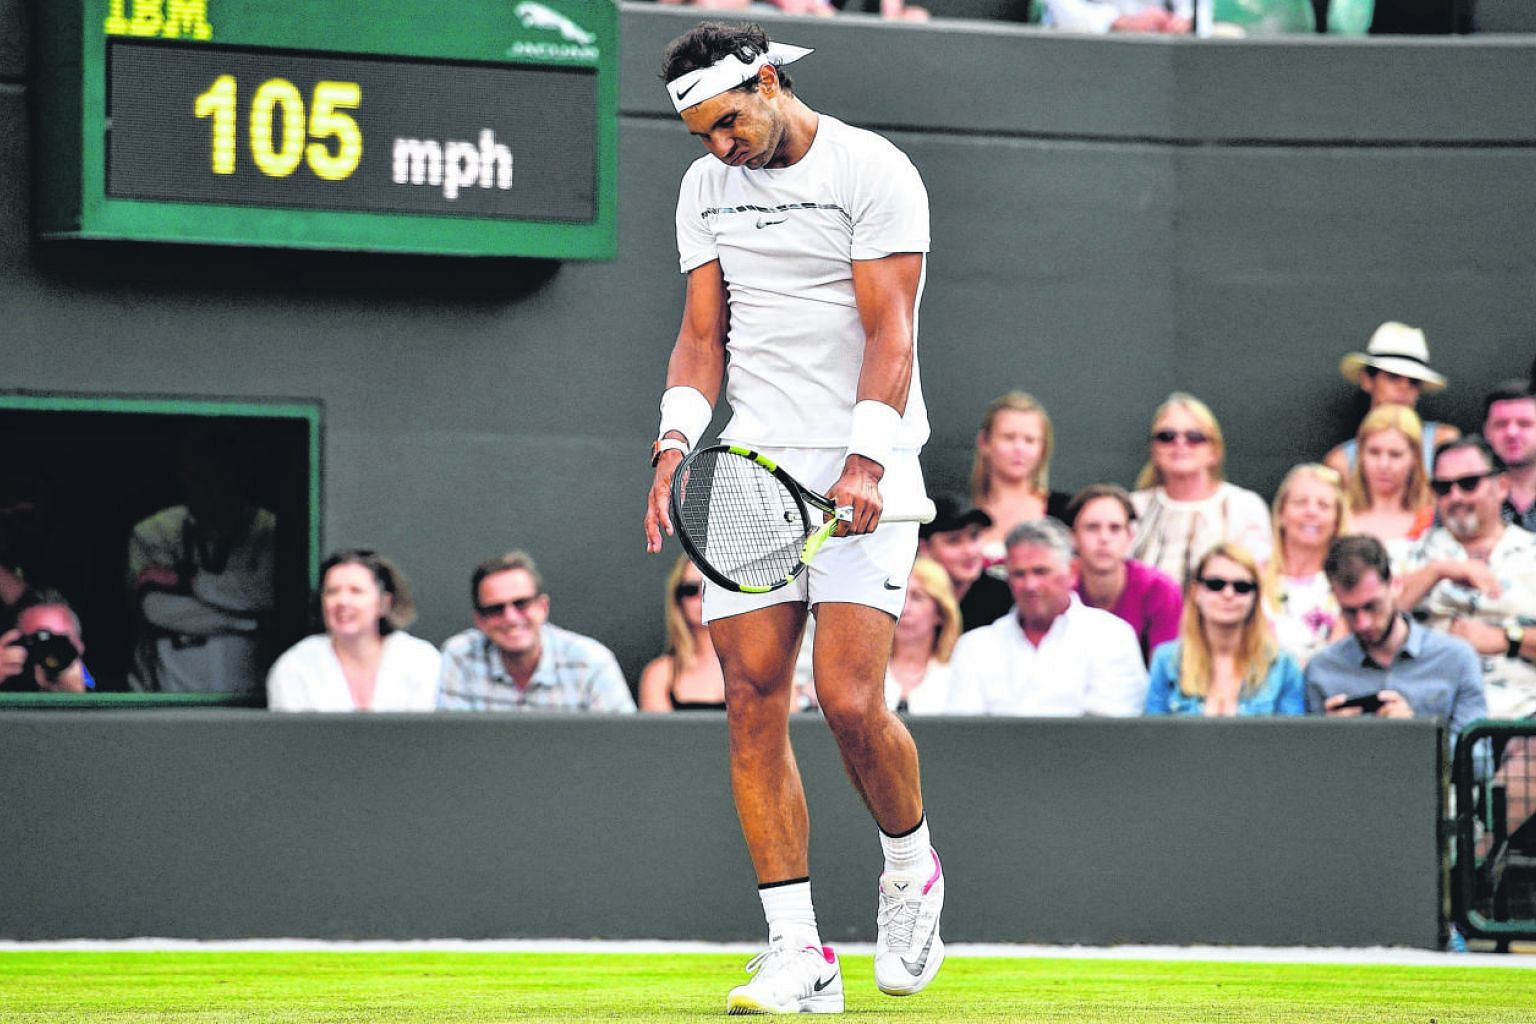 Rafael Nadal showing his frustration after losing a point to Luxembourg's Gilles Muller during their fourth round match at Wimbledon.